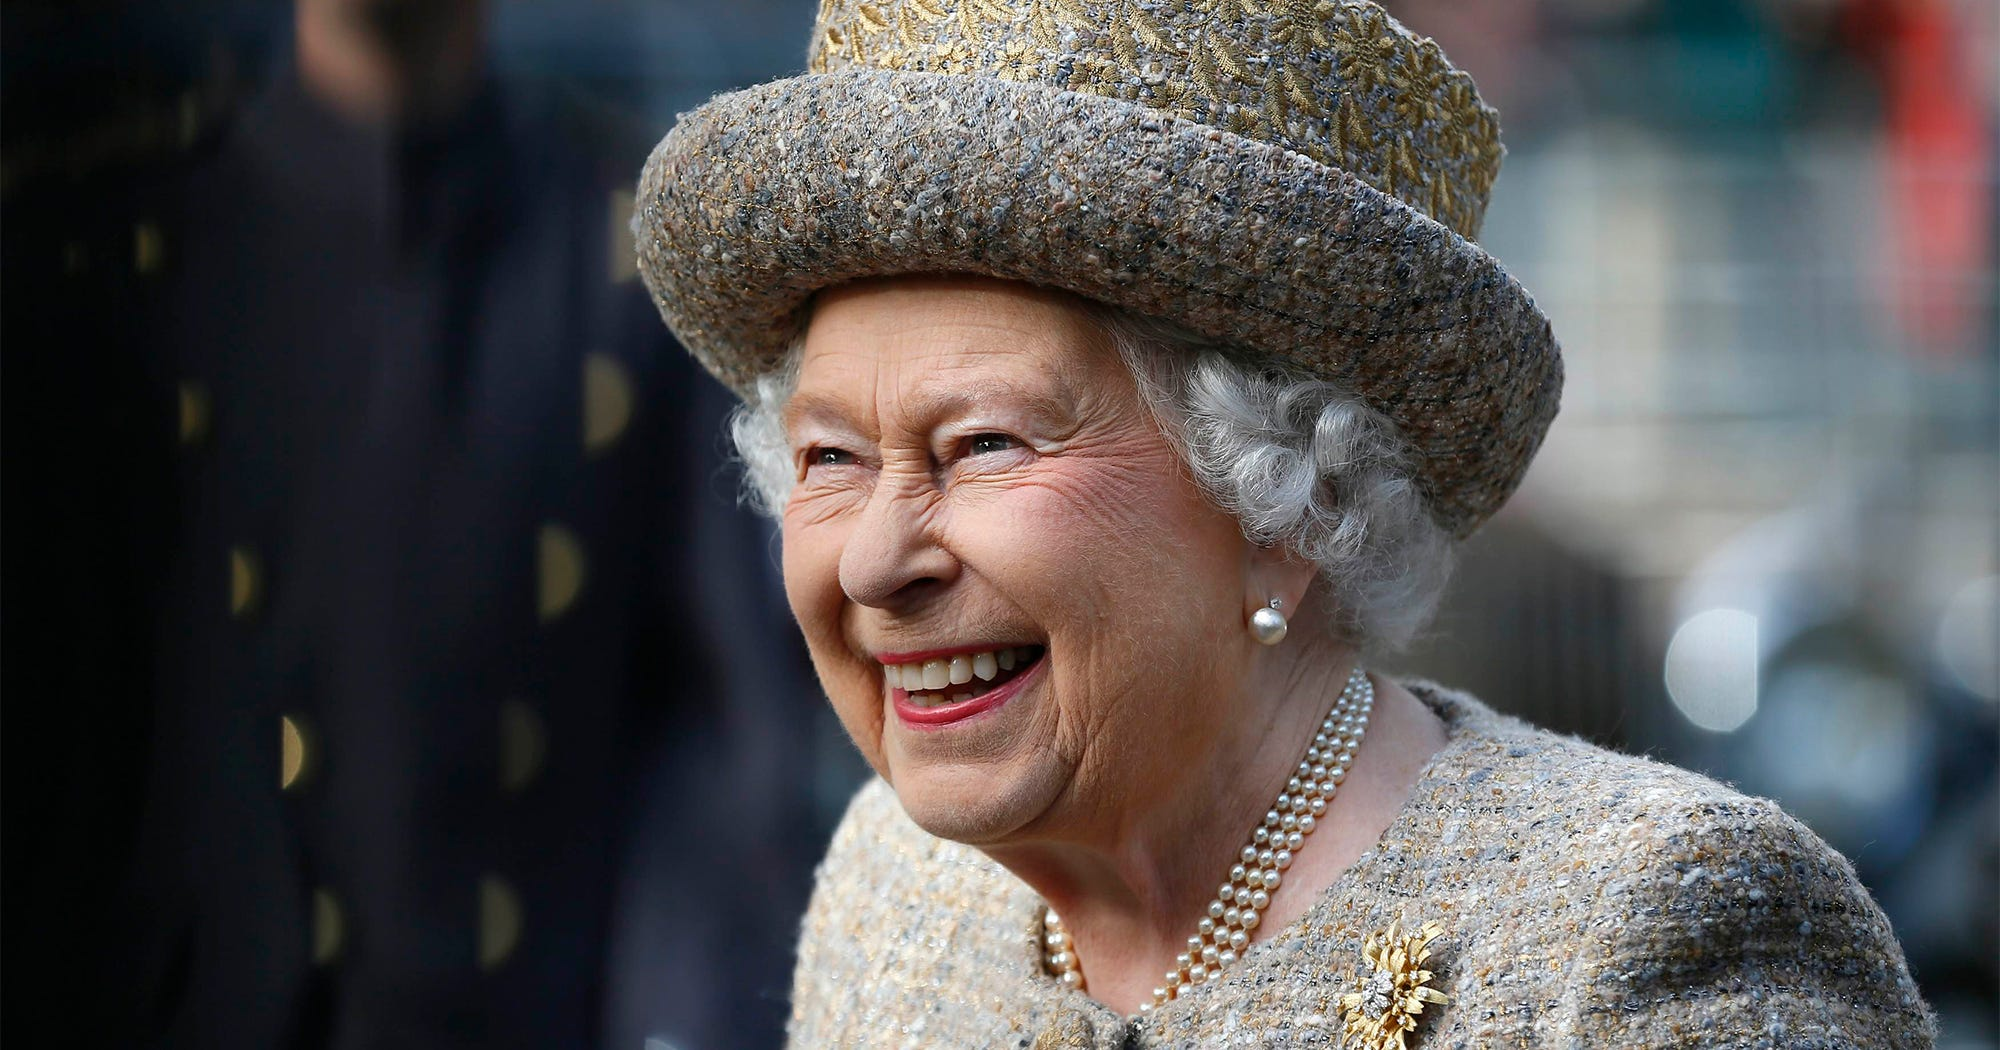 The Queen Is Hiring A Social Media Manager & You Can Apply On LinkedIn